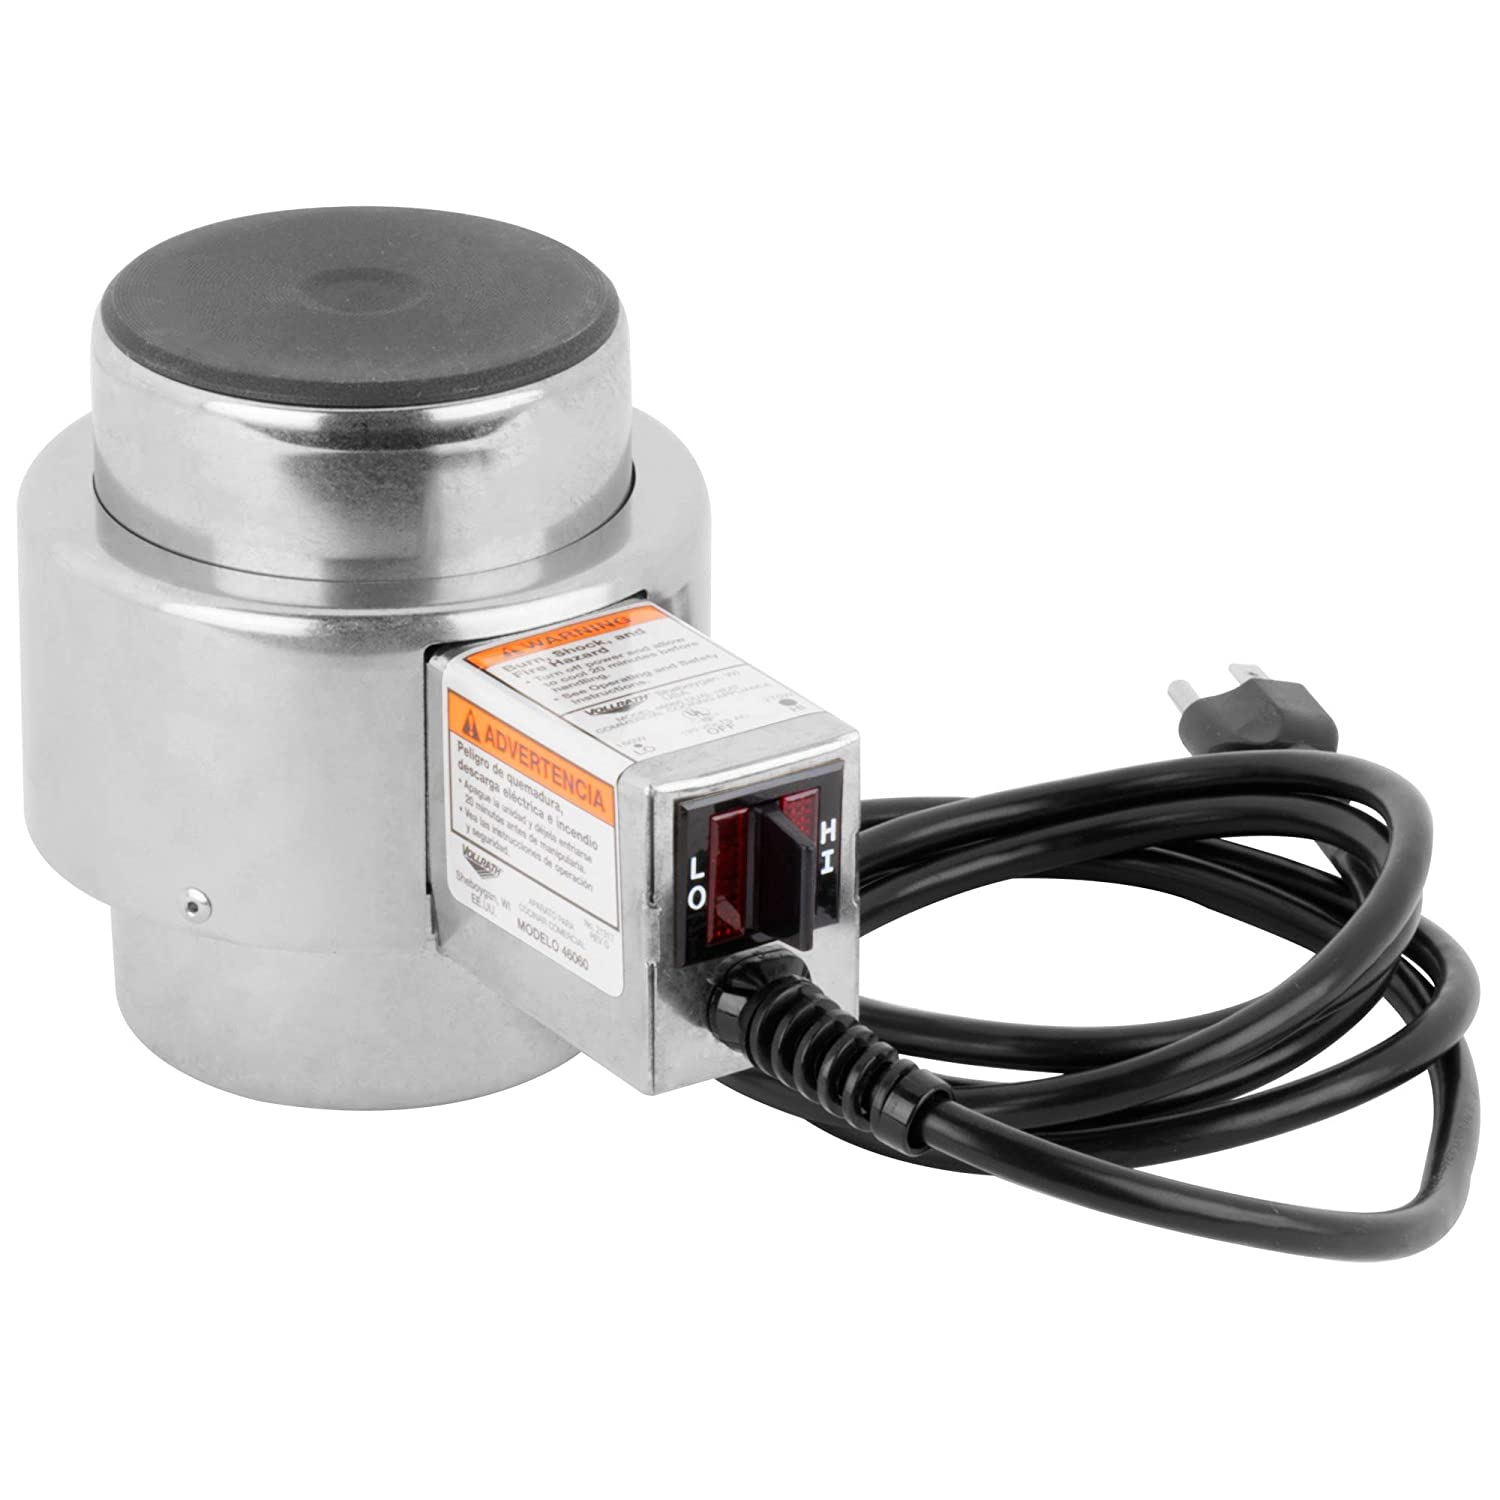 Vollrath 46060 Universal Electric Chafer Heater